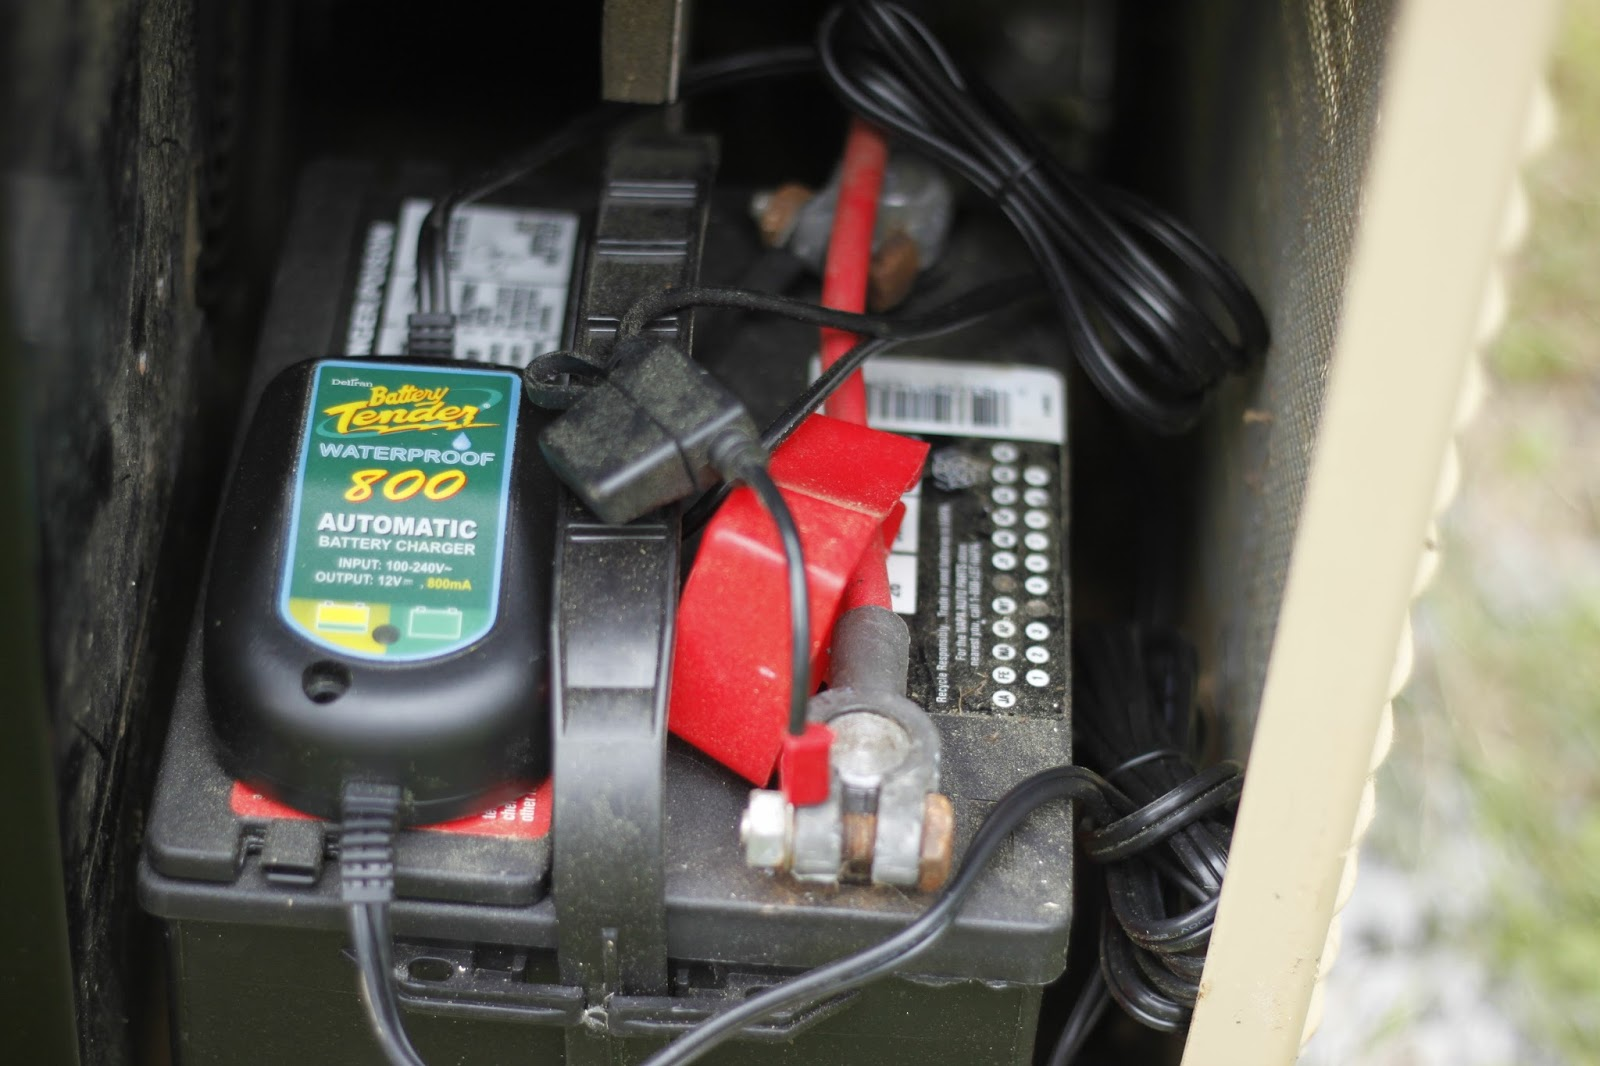 charger%2Bon%2Bbattery fet tricks substitue battery charger for generac generator 4000 Watt Generac Generator Wiring at gsmportal.co